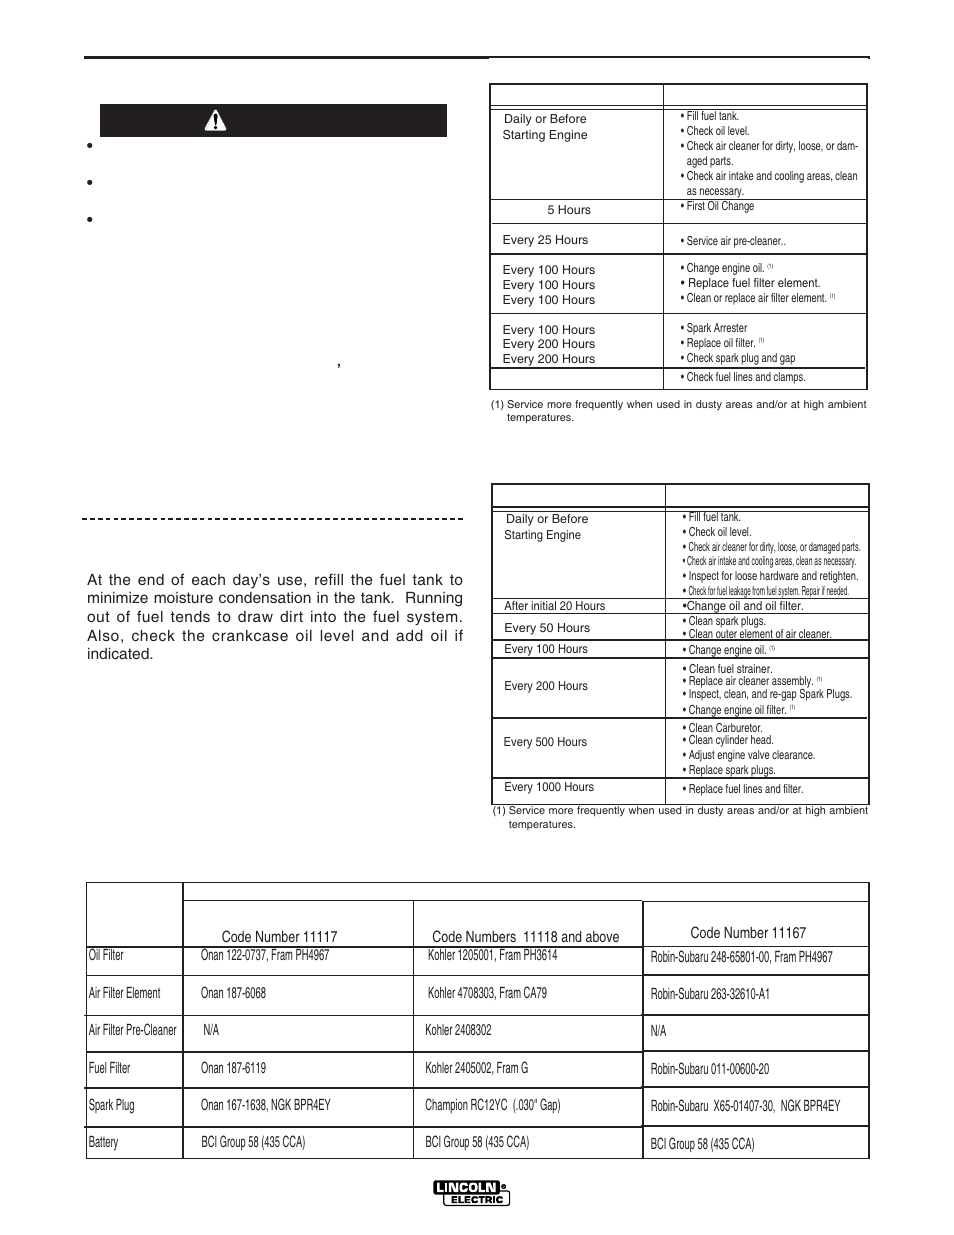 Maintenance, Kohler engine, Safety precautions | Lincoln Electric IM833  RANGER 250G User Manual | Page 25 / 49